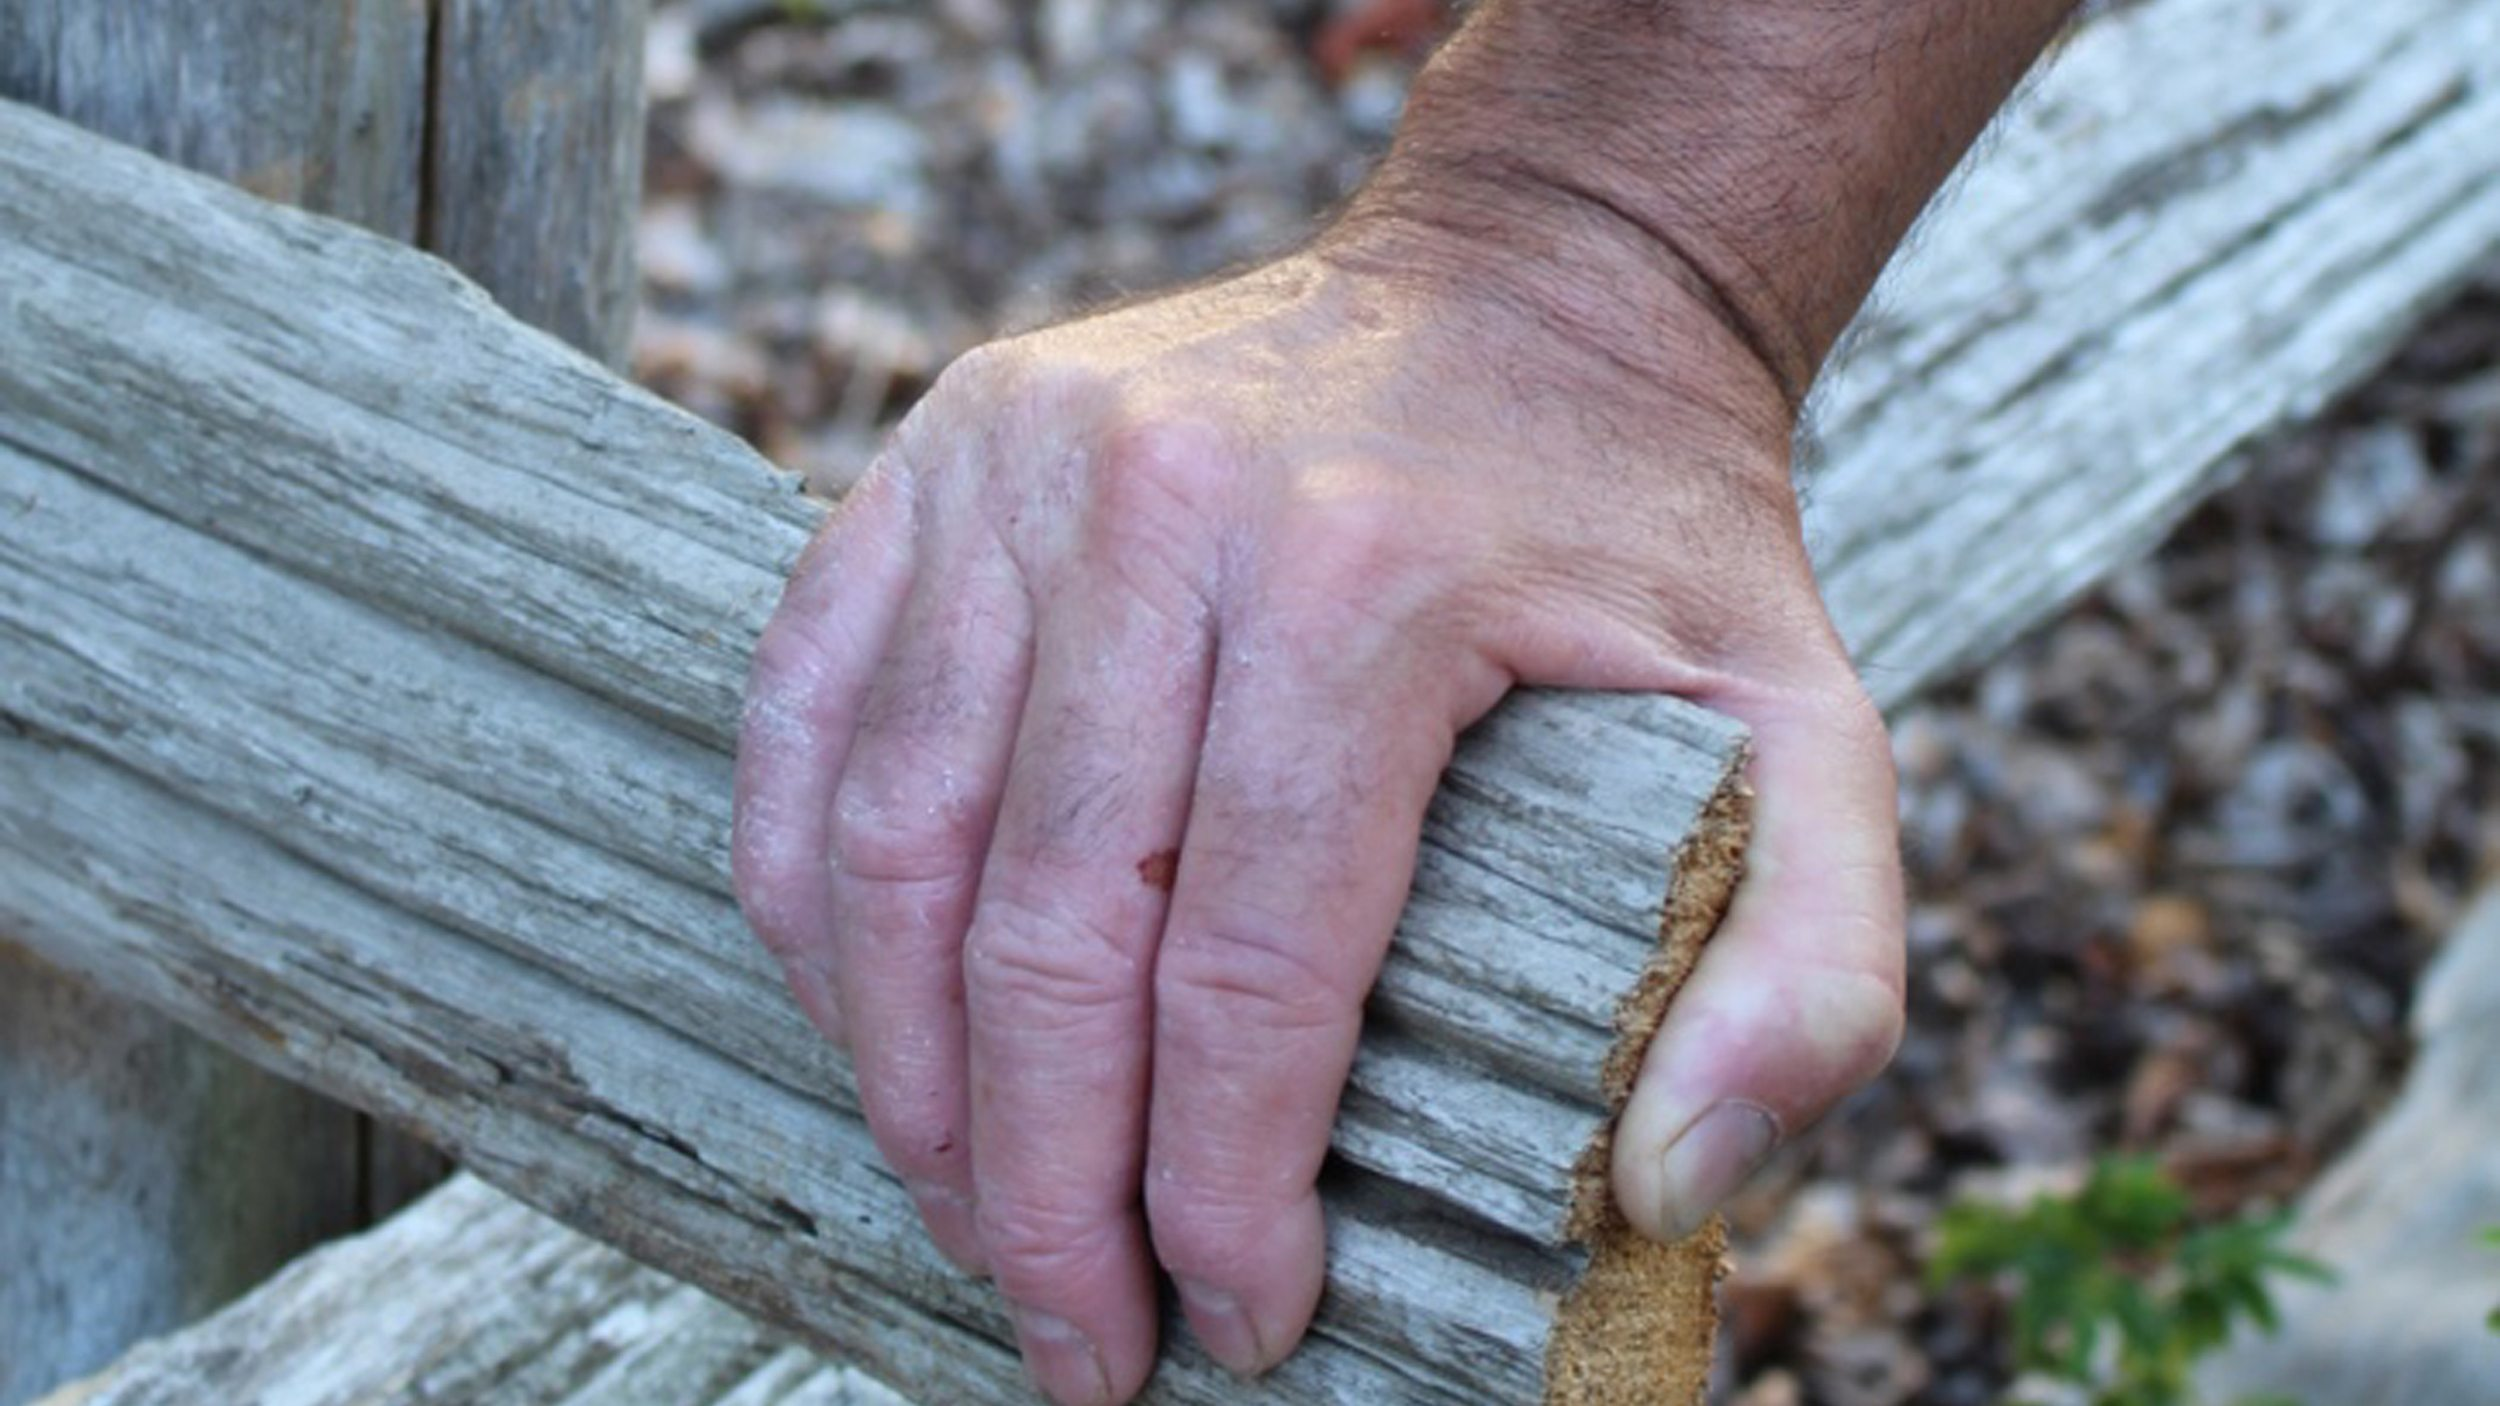 A man's hand holding onto a wooden fence